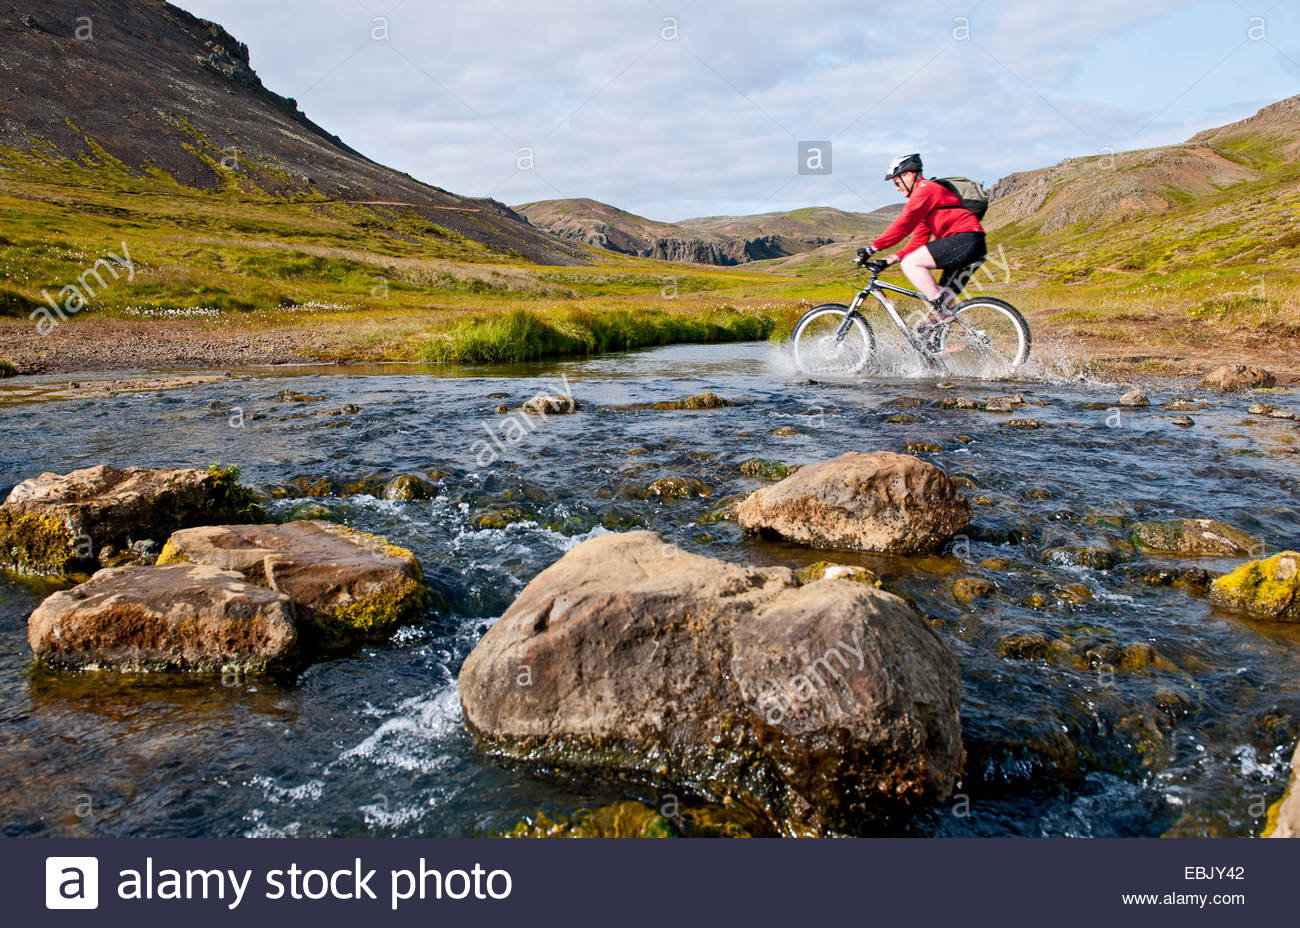 Young male mountain biker cycling through hot river, Reykjadalur valley, South West Iceland - Stock Image